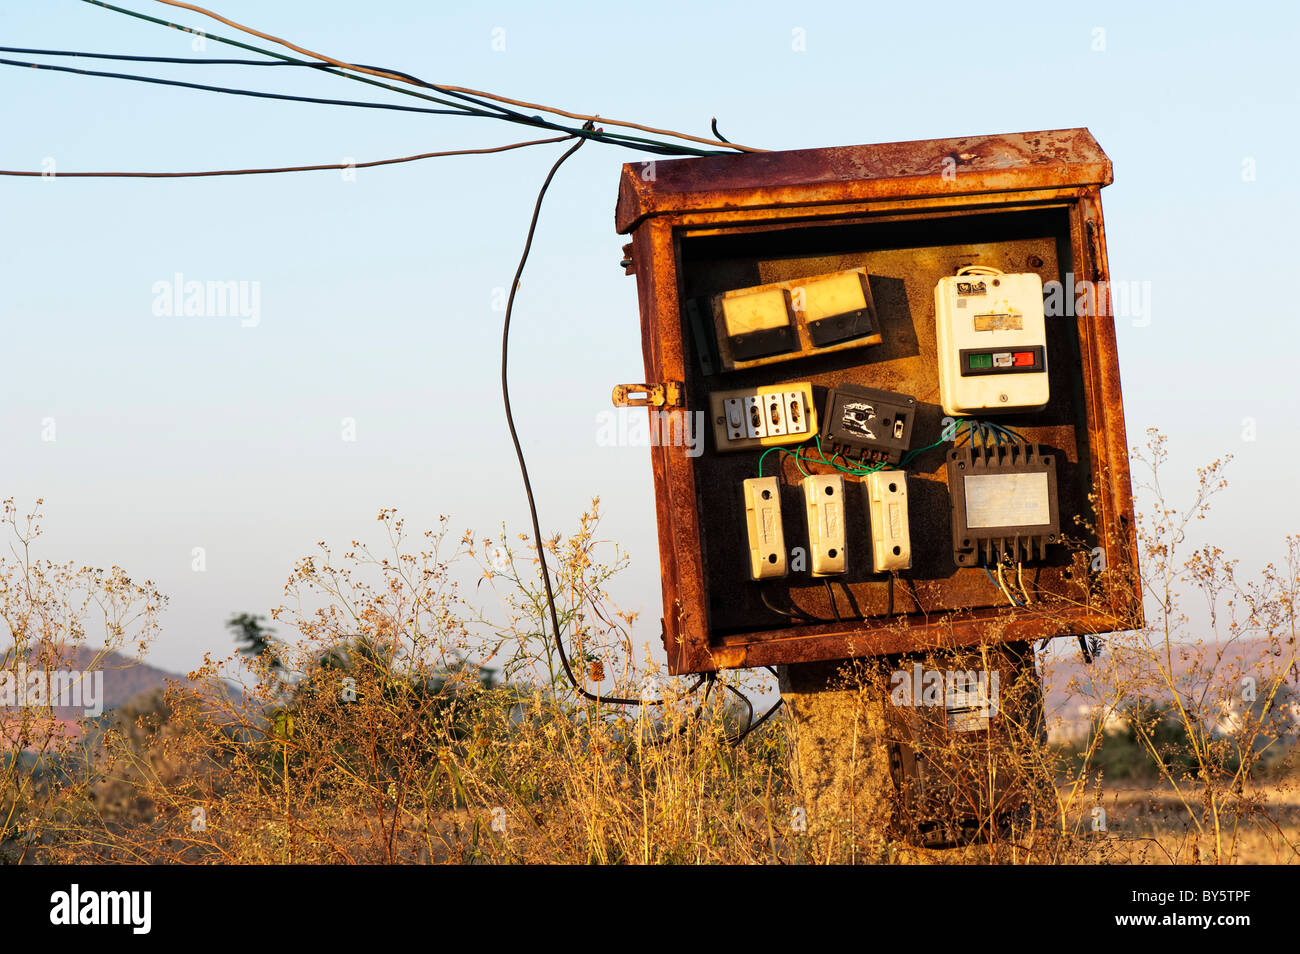 Electrical Fuse Box Rust Free Download Electric Replacement In The Rural Indian Countryside Andhra Pradesh